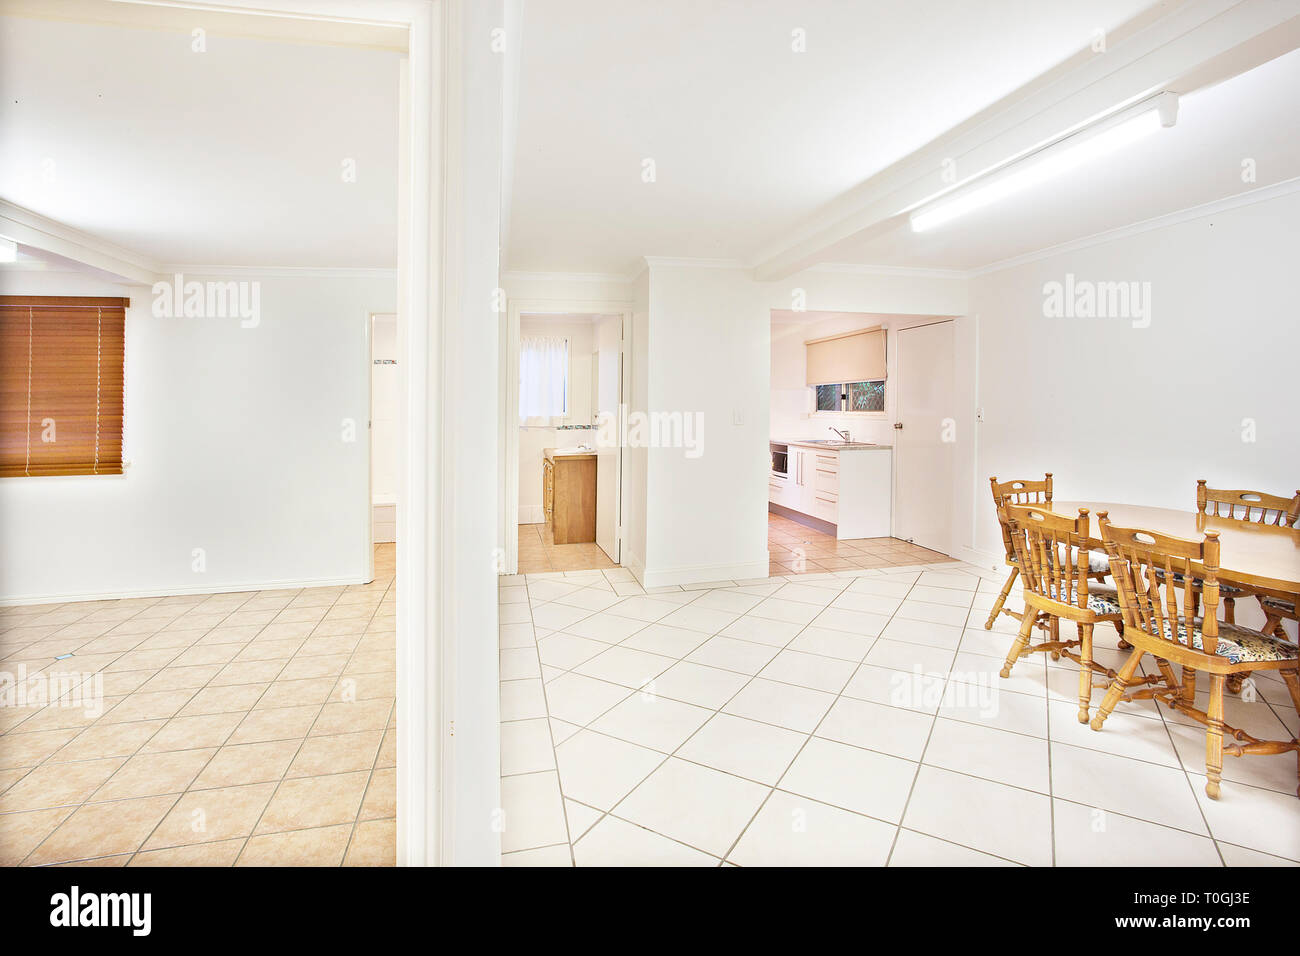 Bright white clean home interior with minimalist decor and a view down a iding wall to an empty tiled room and dining area with table and chairs & Bright white clean home interior with minimalist decor and a view ...